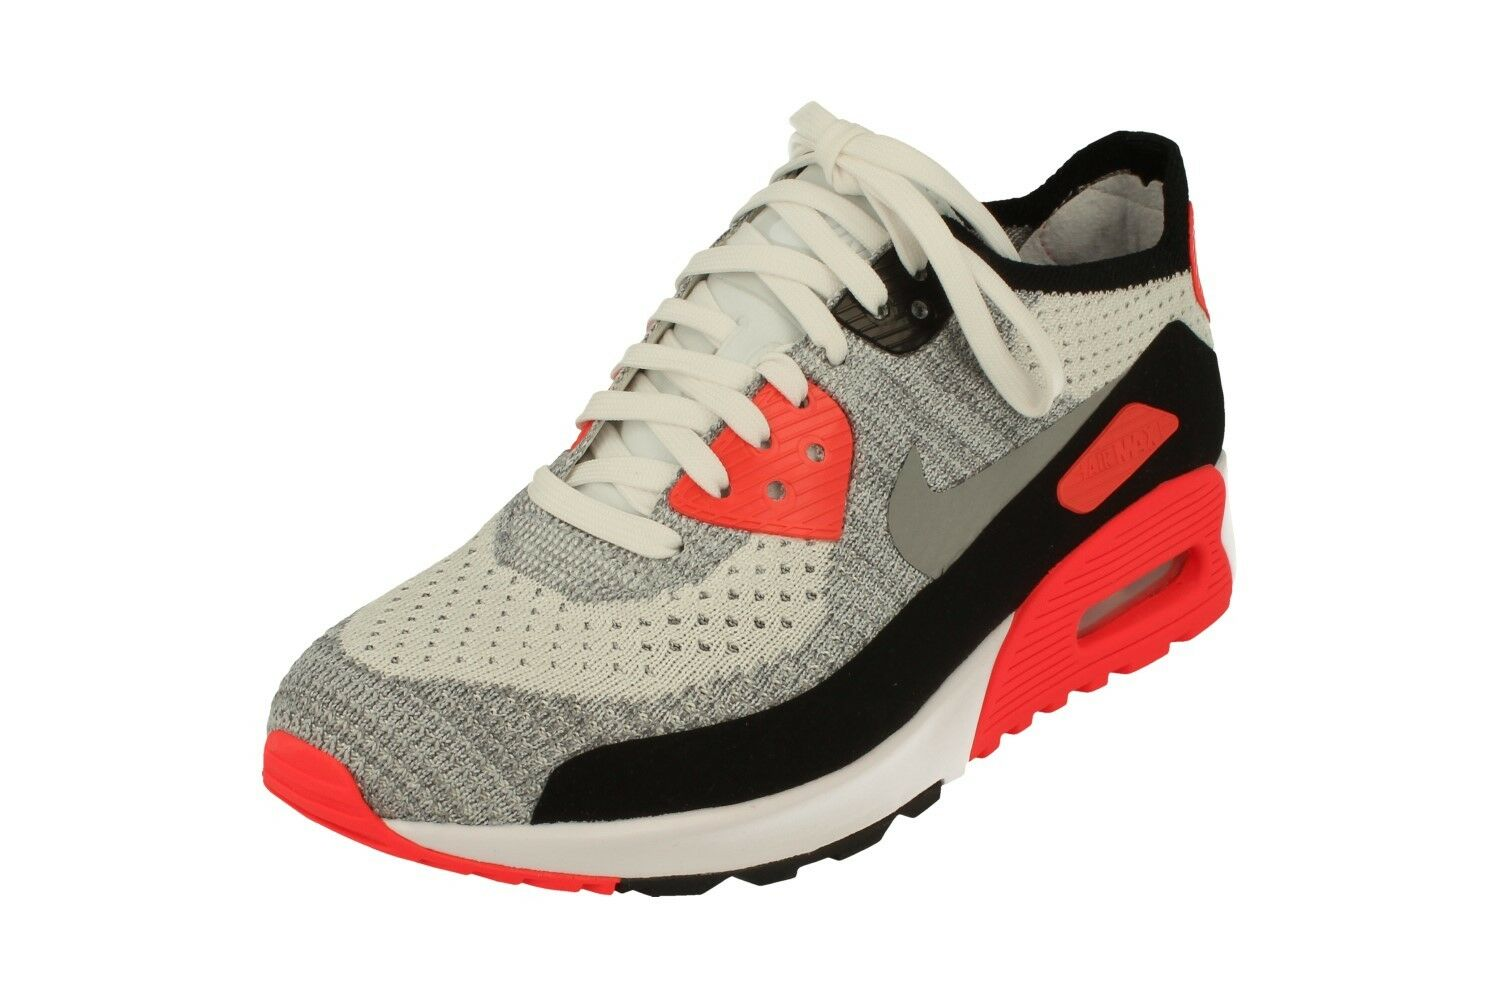 Nike Nike Nike Womens Air Max 90 Ultra 2.0 Flyknit Running Trainers 881109 100 Sneakers a7cb9d